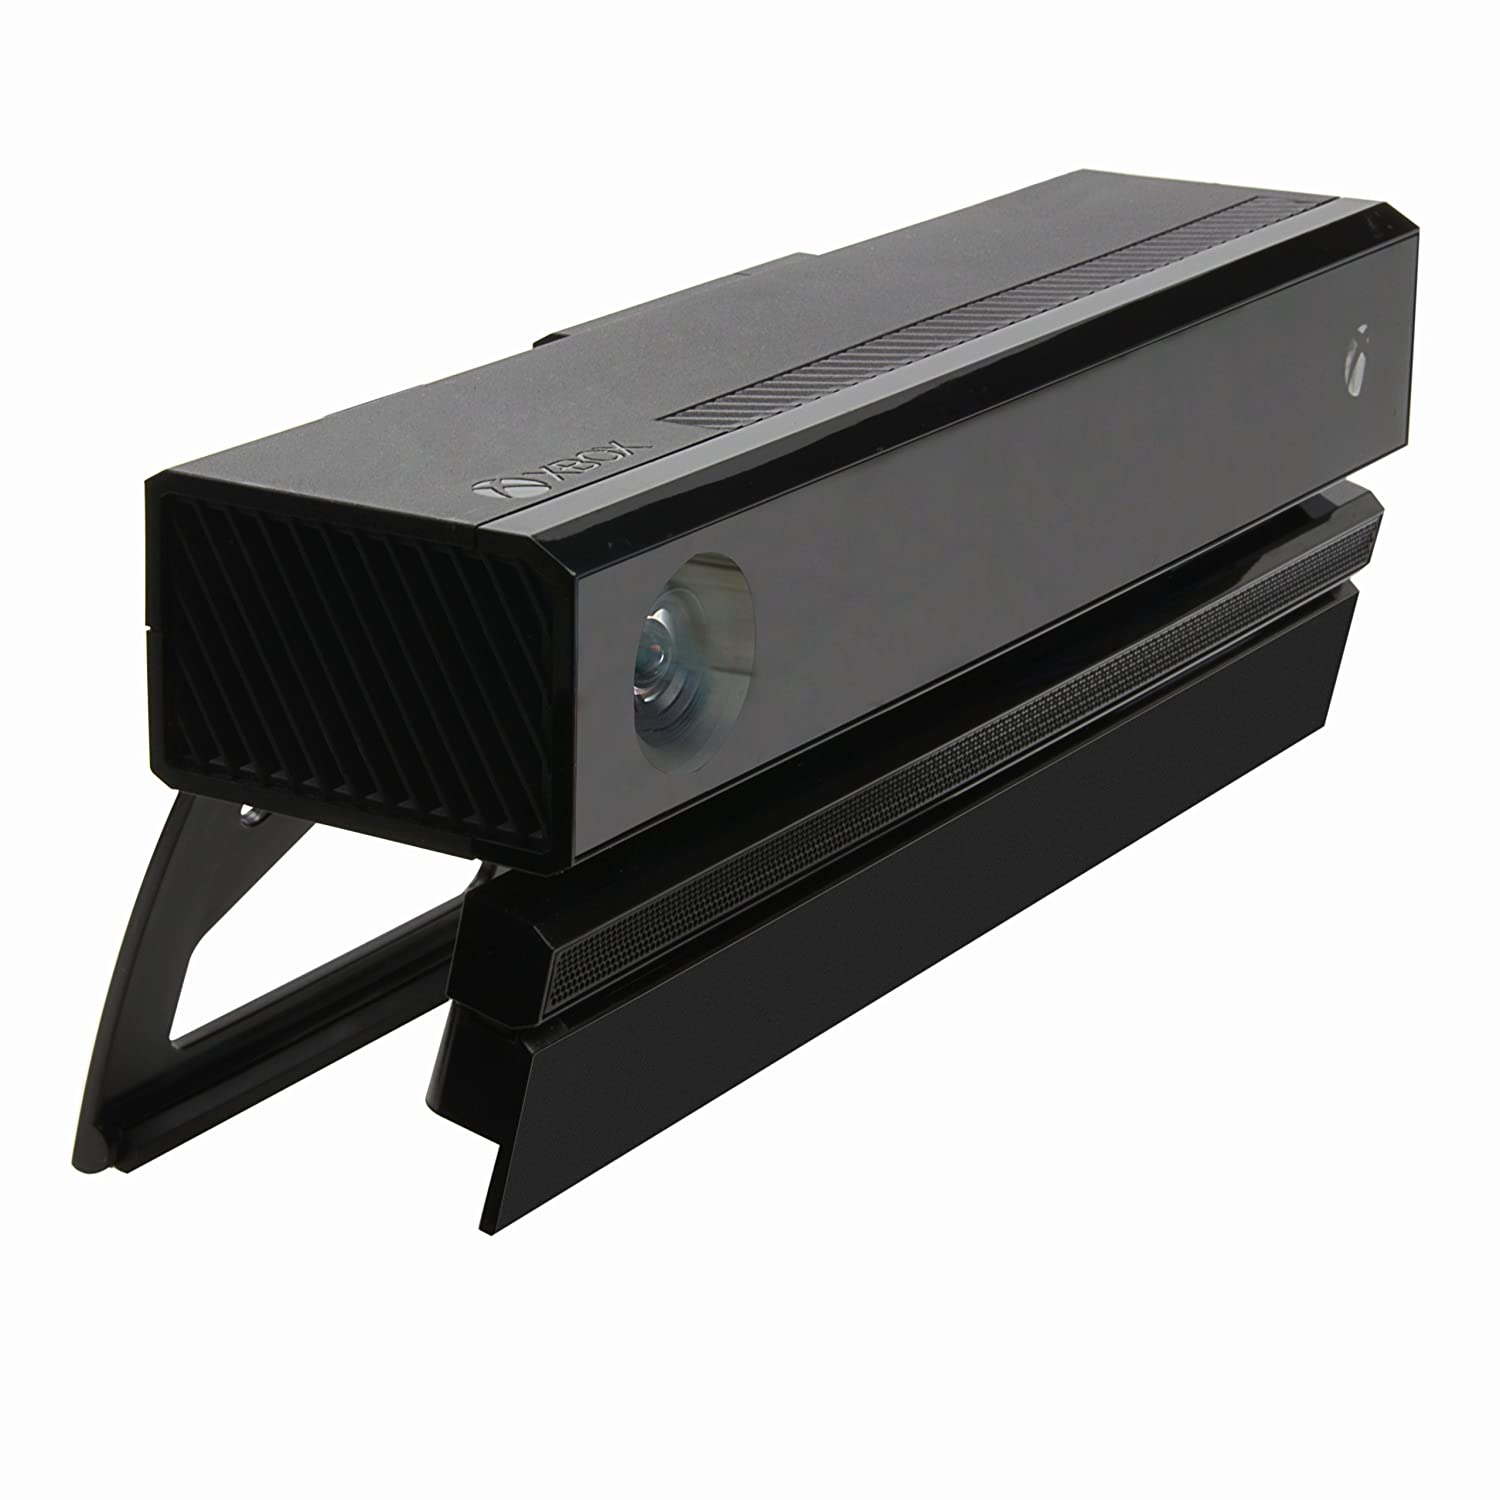 Xbox One Kinect Mount Image 3